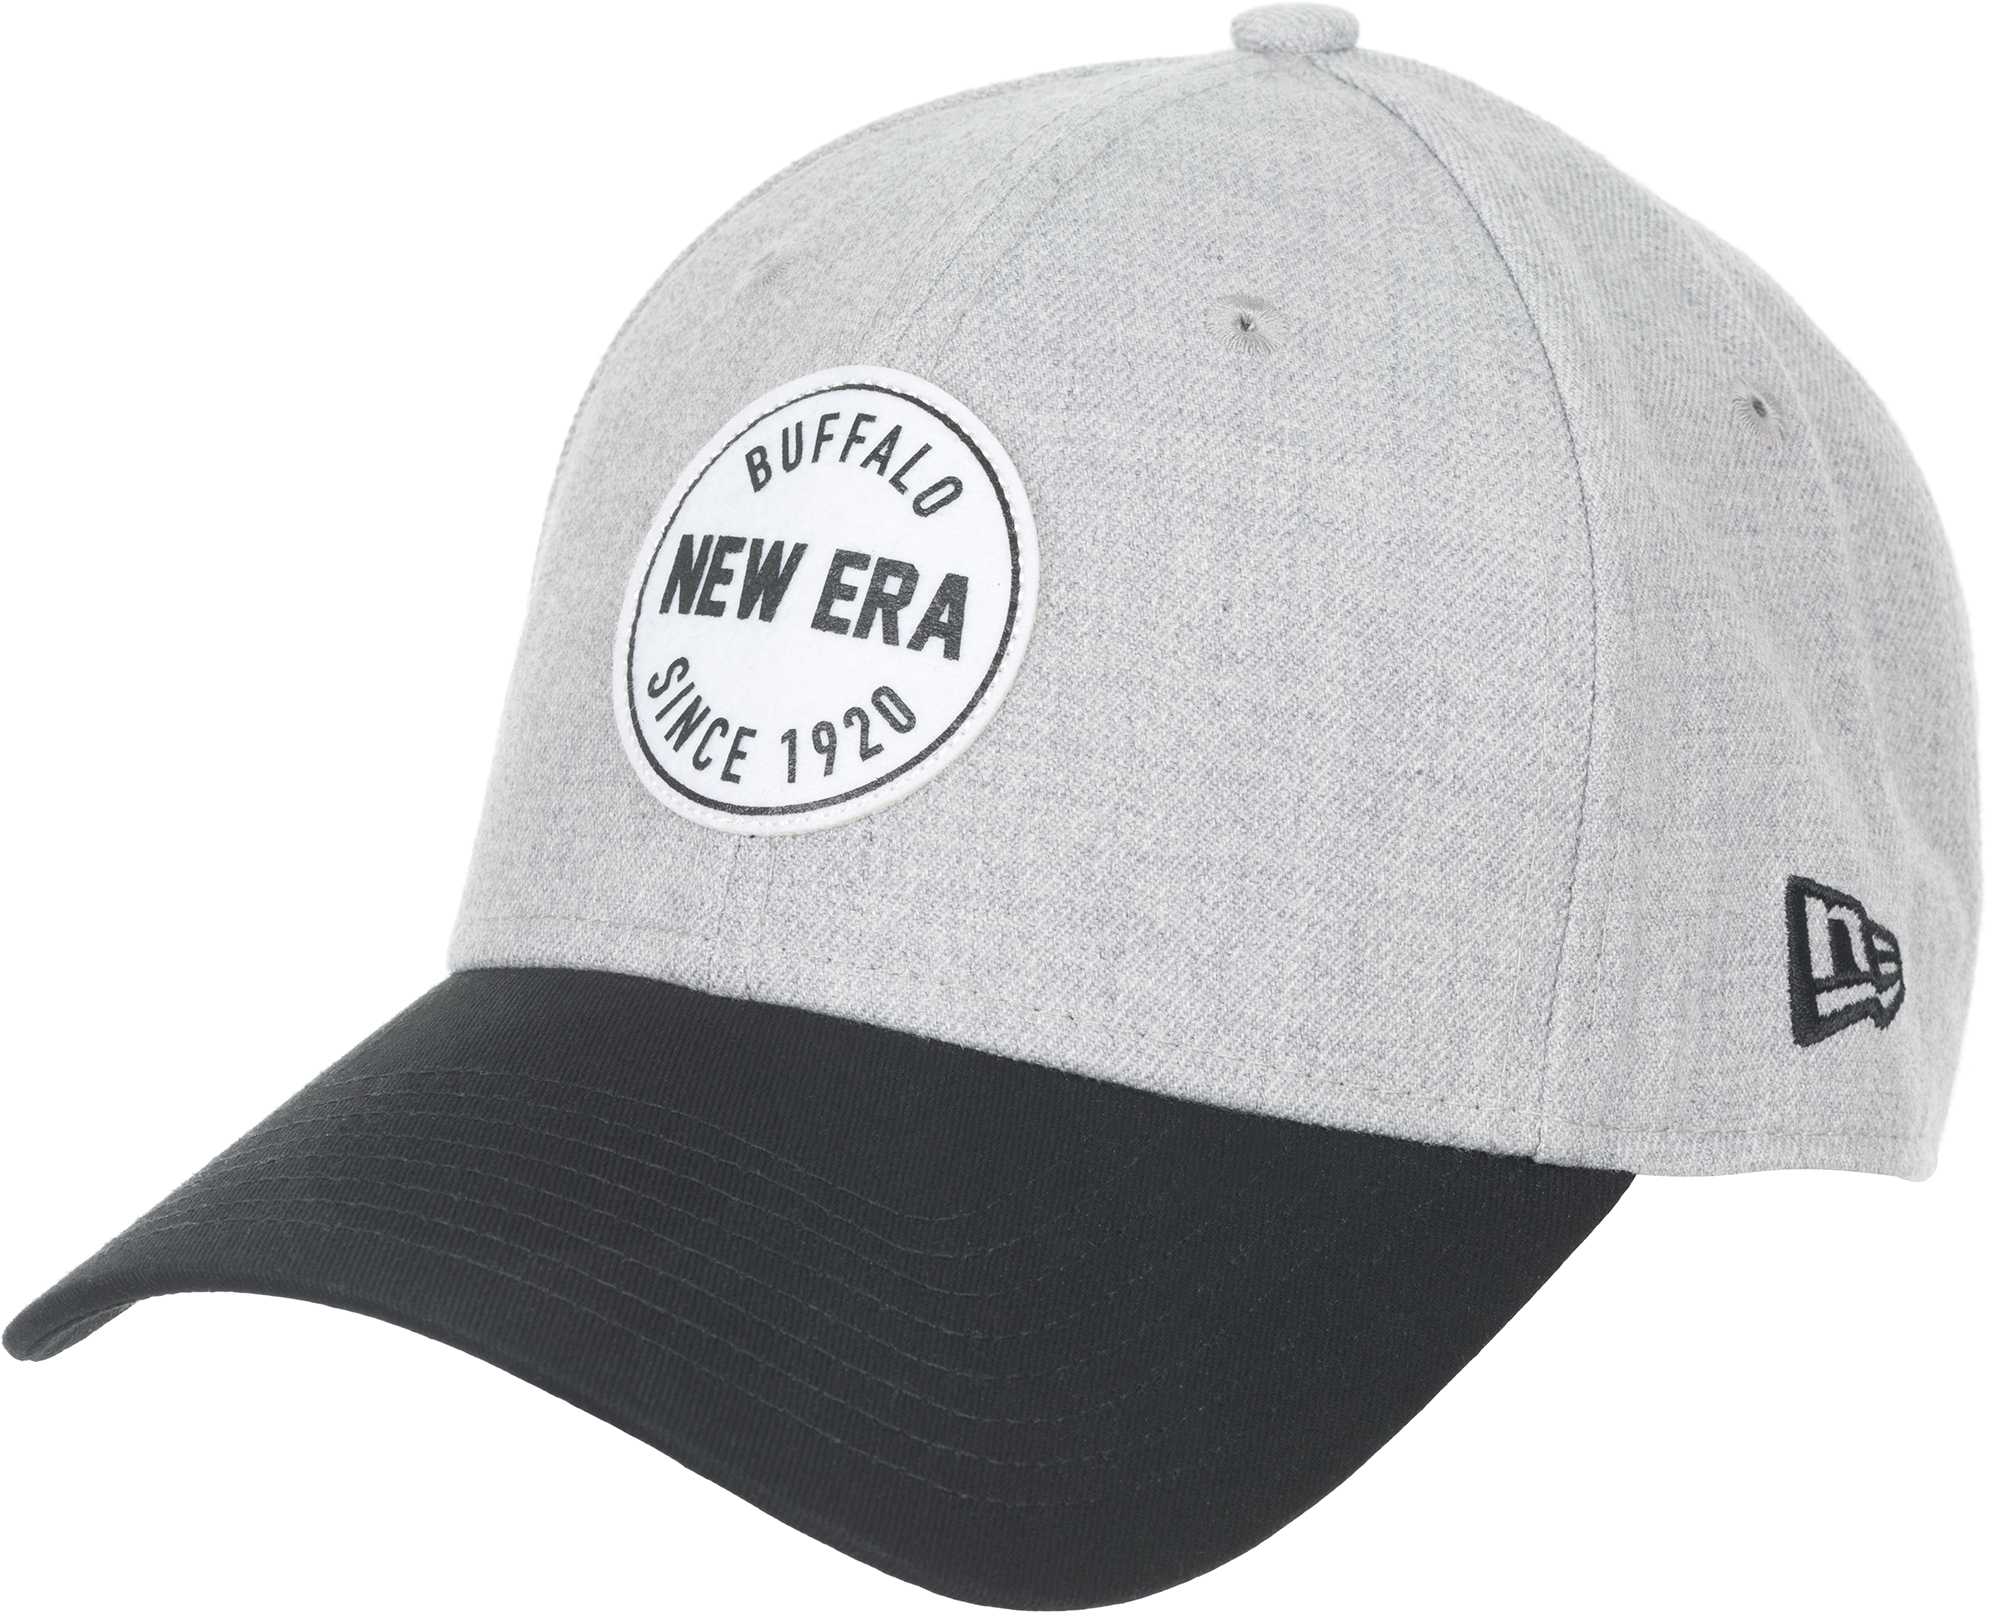 New Era Бейсболка New Era 219 Heather Crown Patch 9Forty, размер Без размера